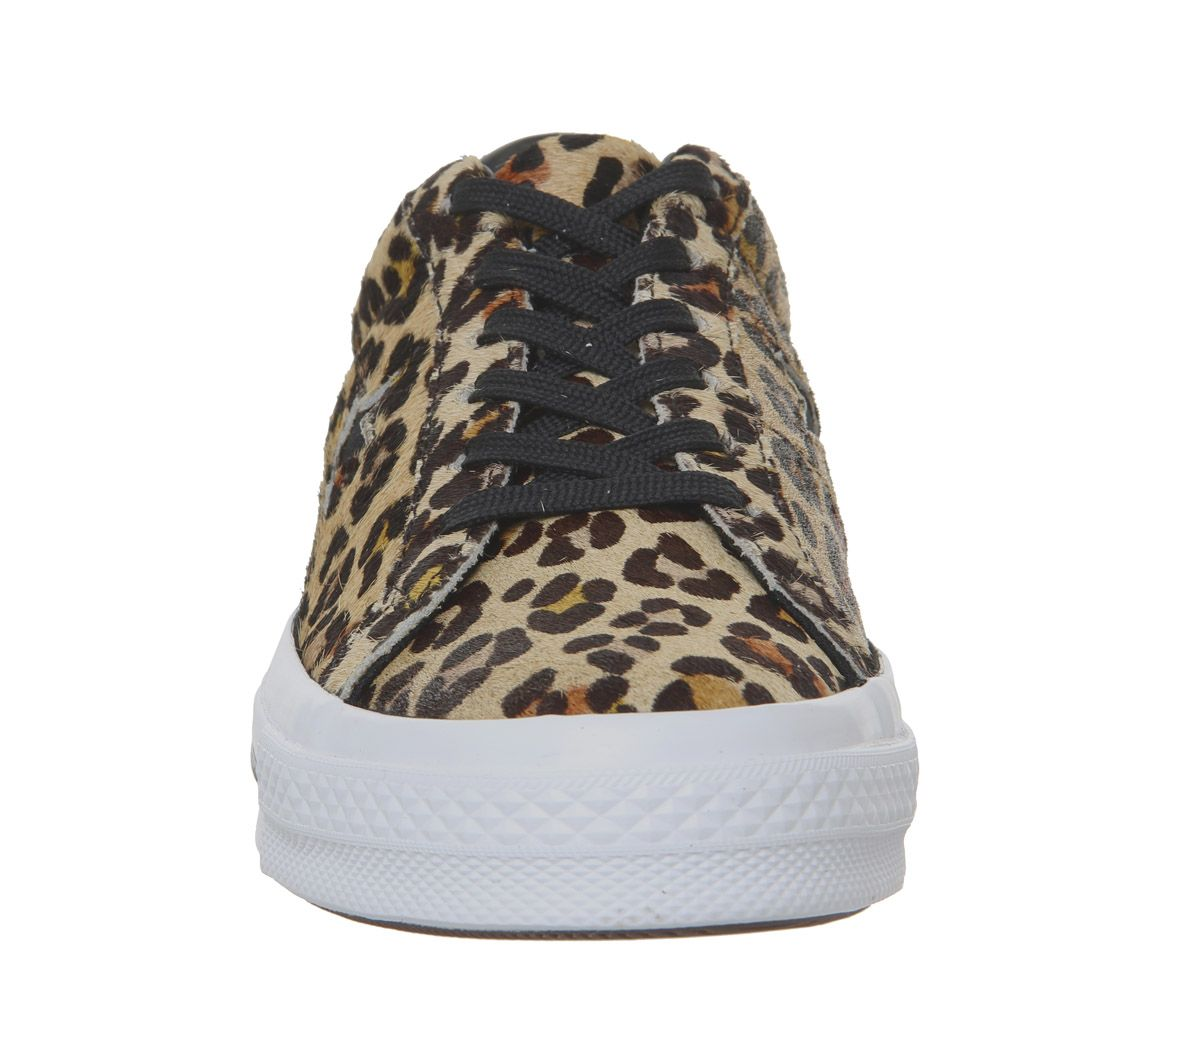 c10ed8230b1fb5 Converse One Star Trainers Leopard Black White - Hers trainers